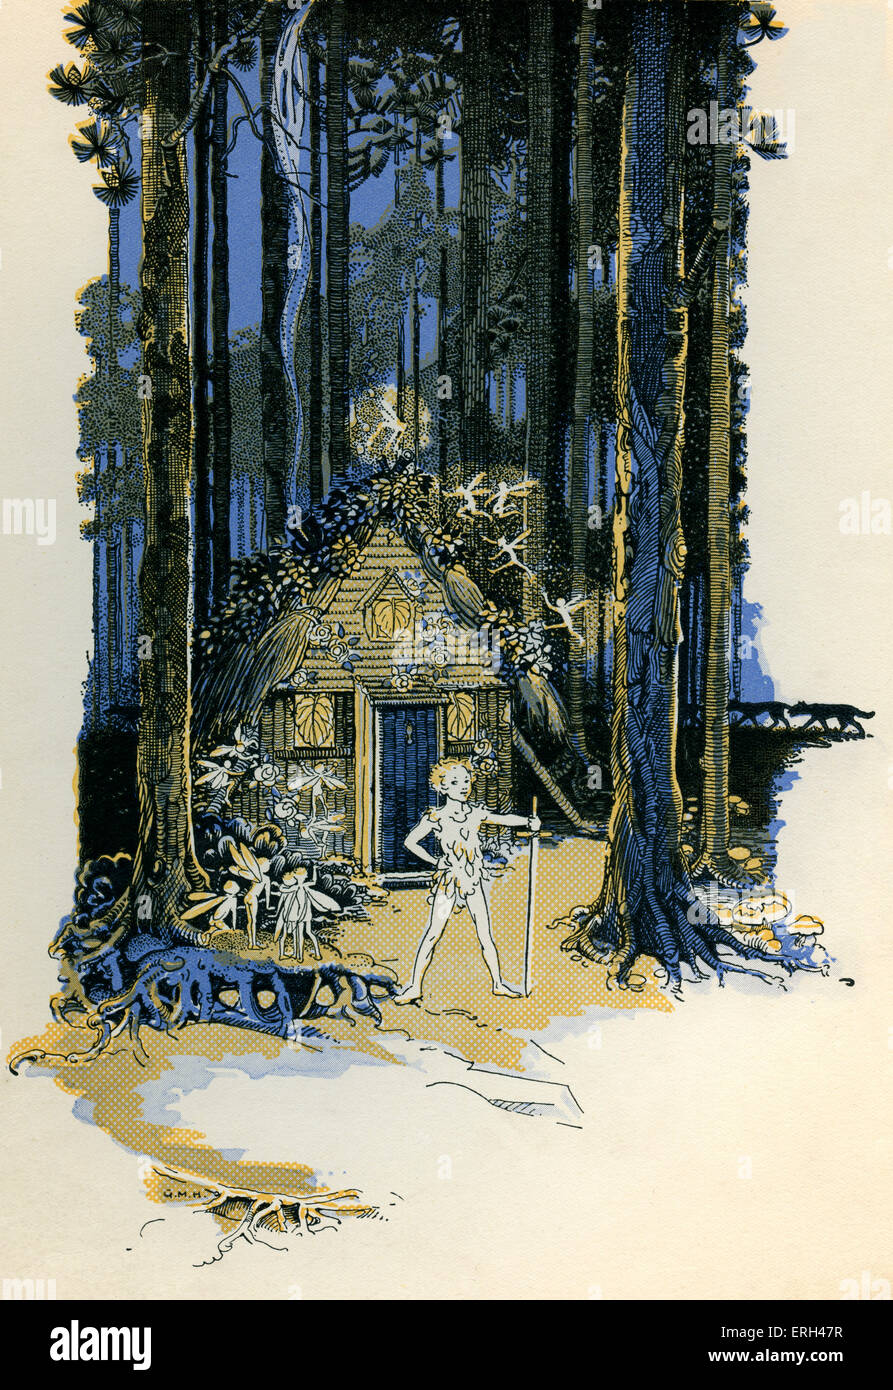 J. M. Barrie 's 'Peter Pan'. 'All night Peter kept guard' (of Wendy's house). James Matthew - Stock Image